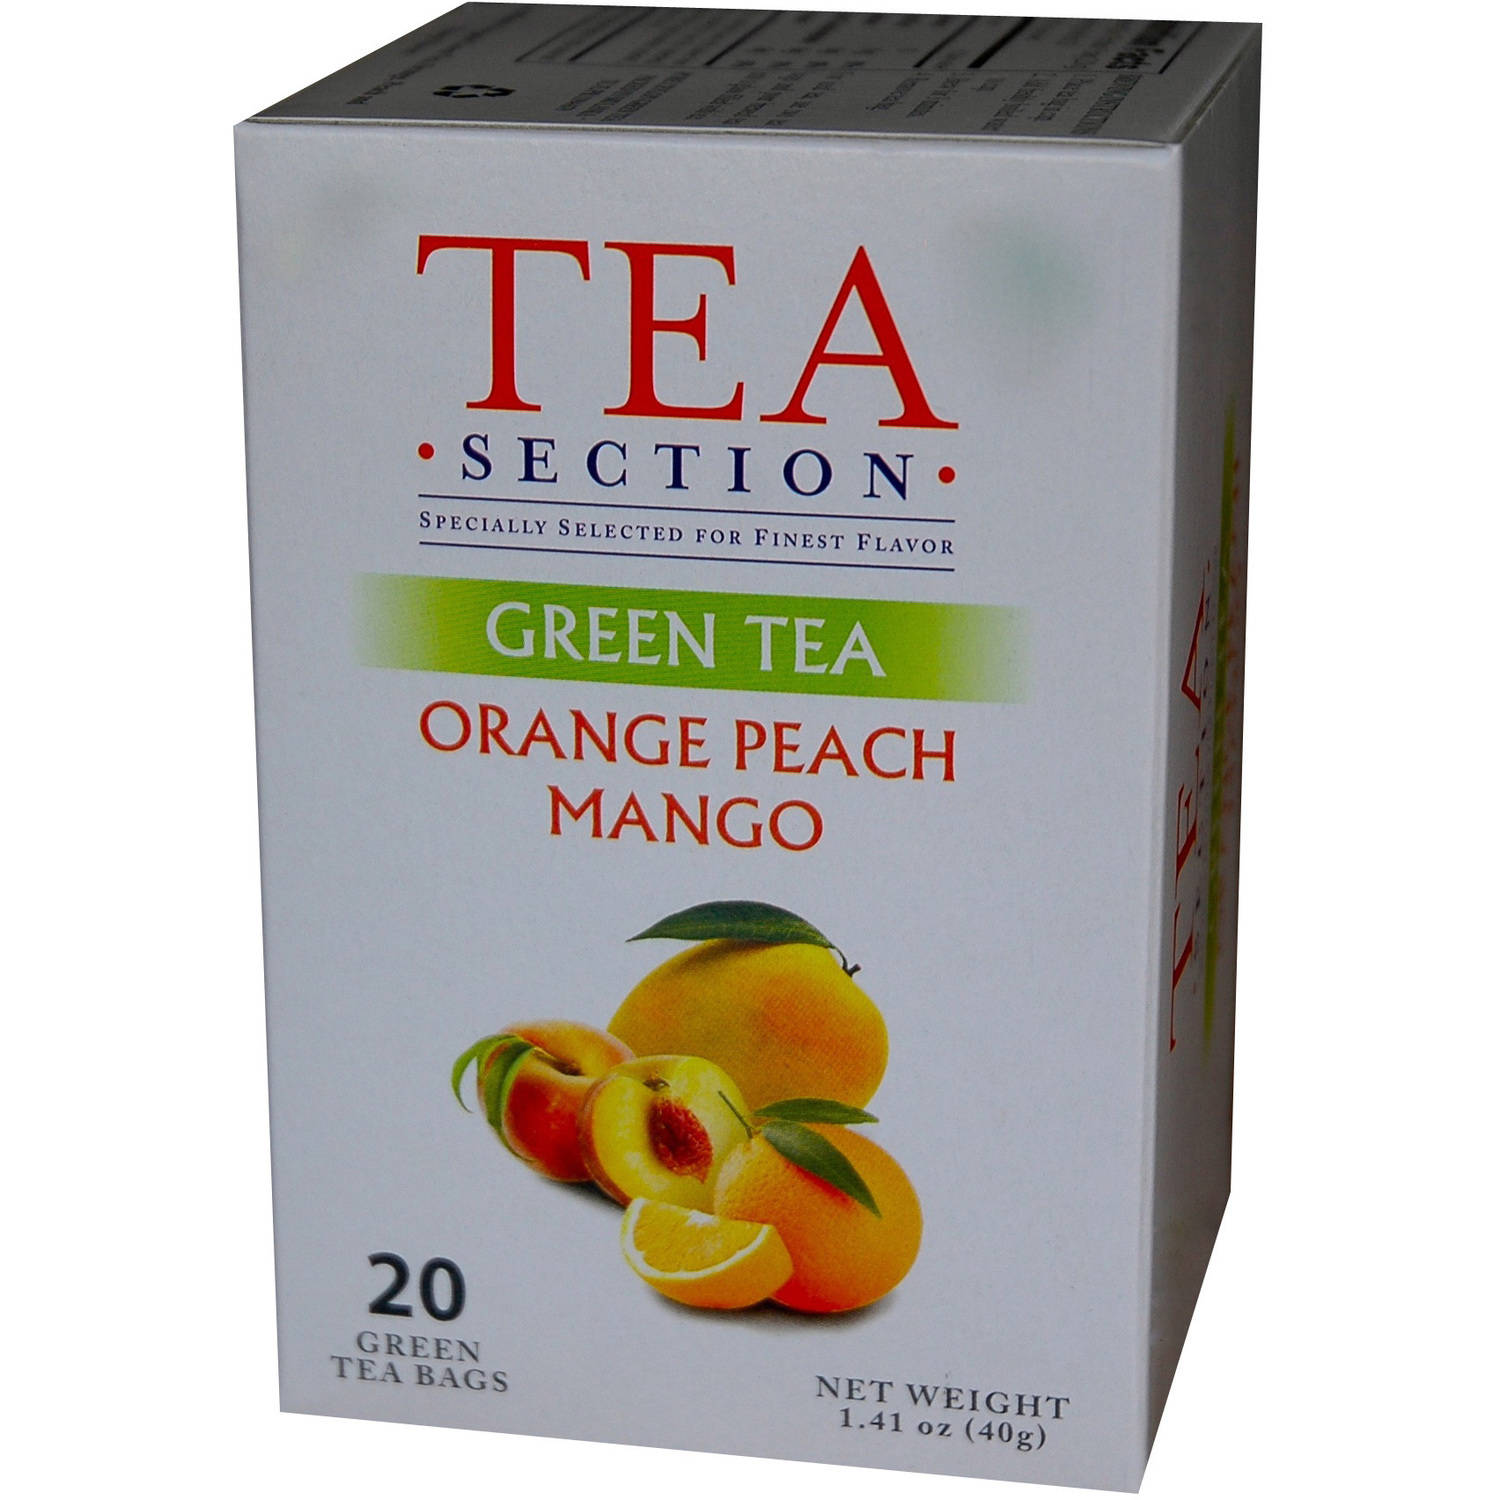 Tea Section Orange Peach Mango Green Tea Bags, 20 count